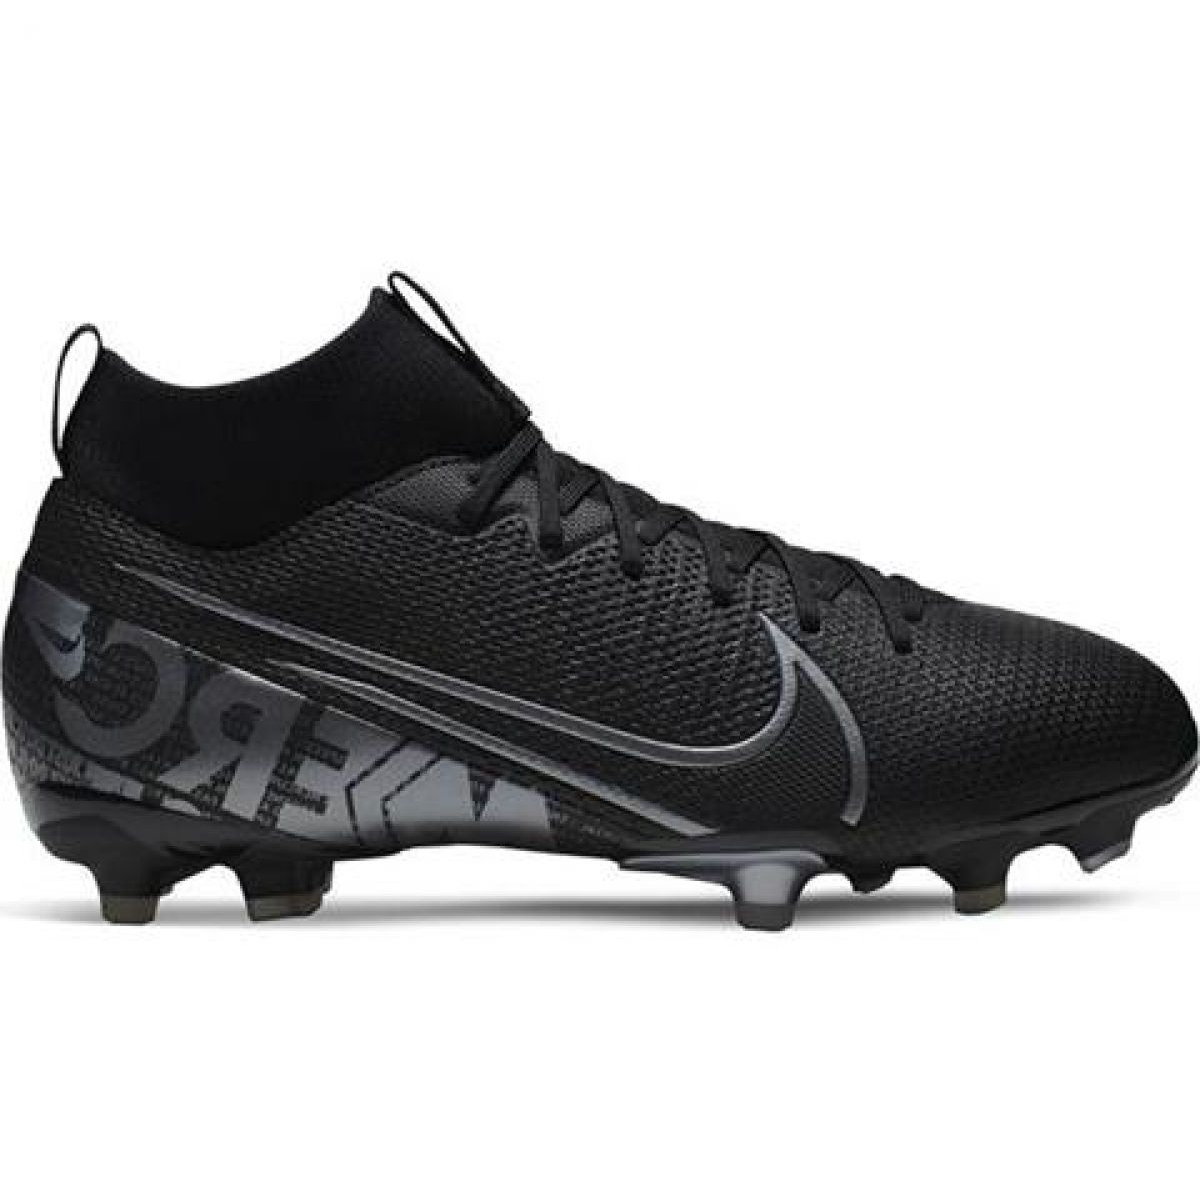 Zapatillas de fútbol Nike Mercurial Superfly 7 Academy FG MG Jr AT8120 001 negro negro